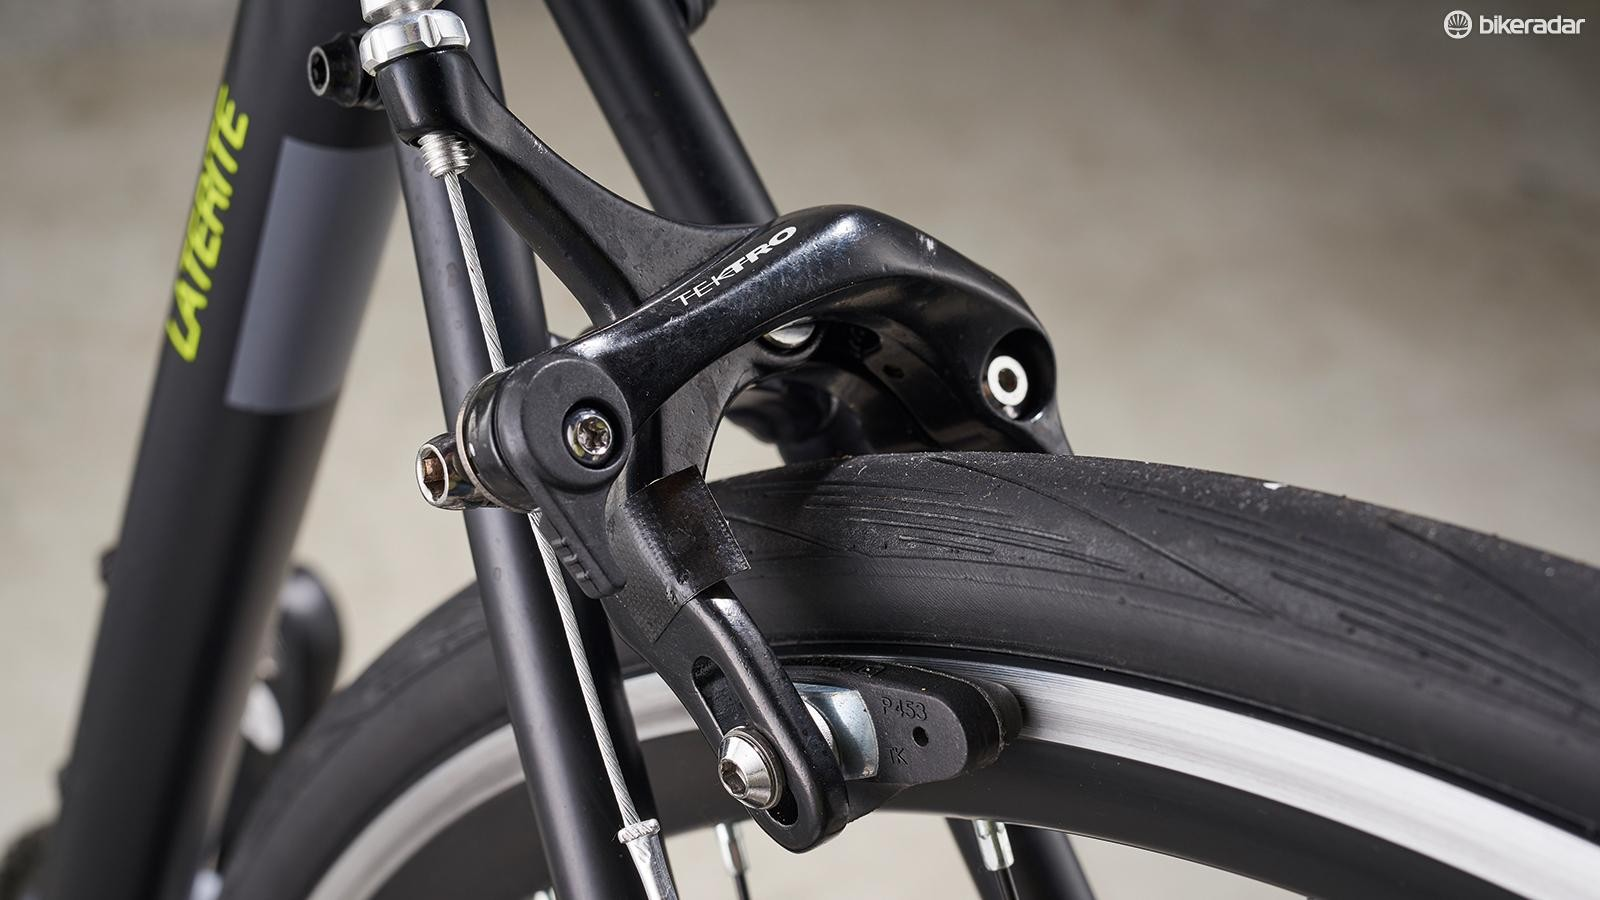 I'd swap the moulded brake pads for cartridge versions